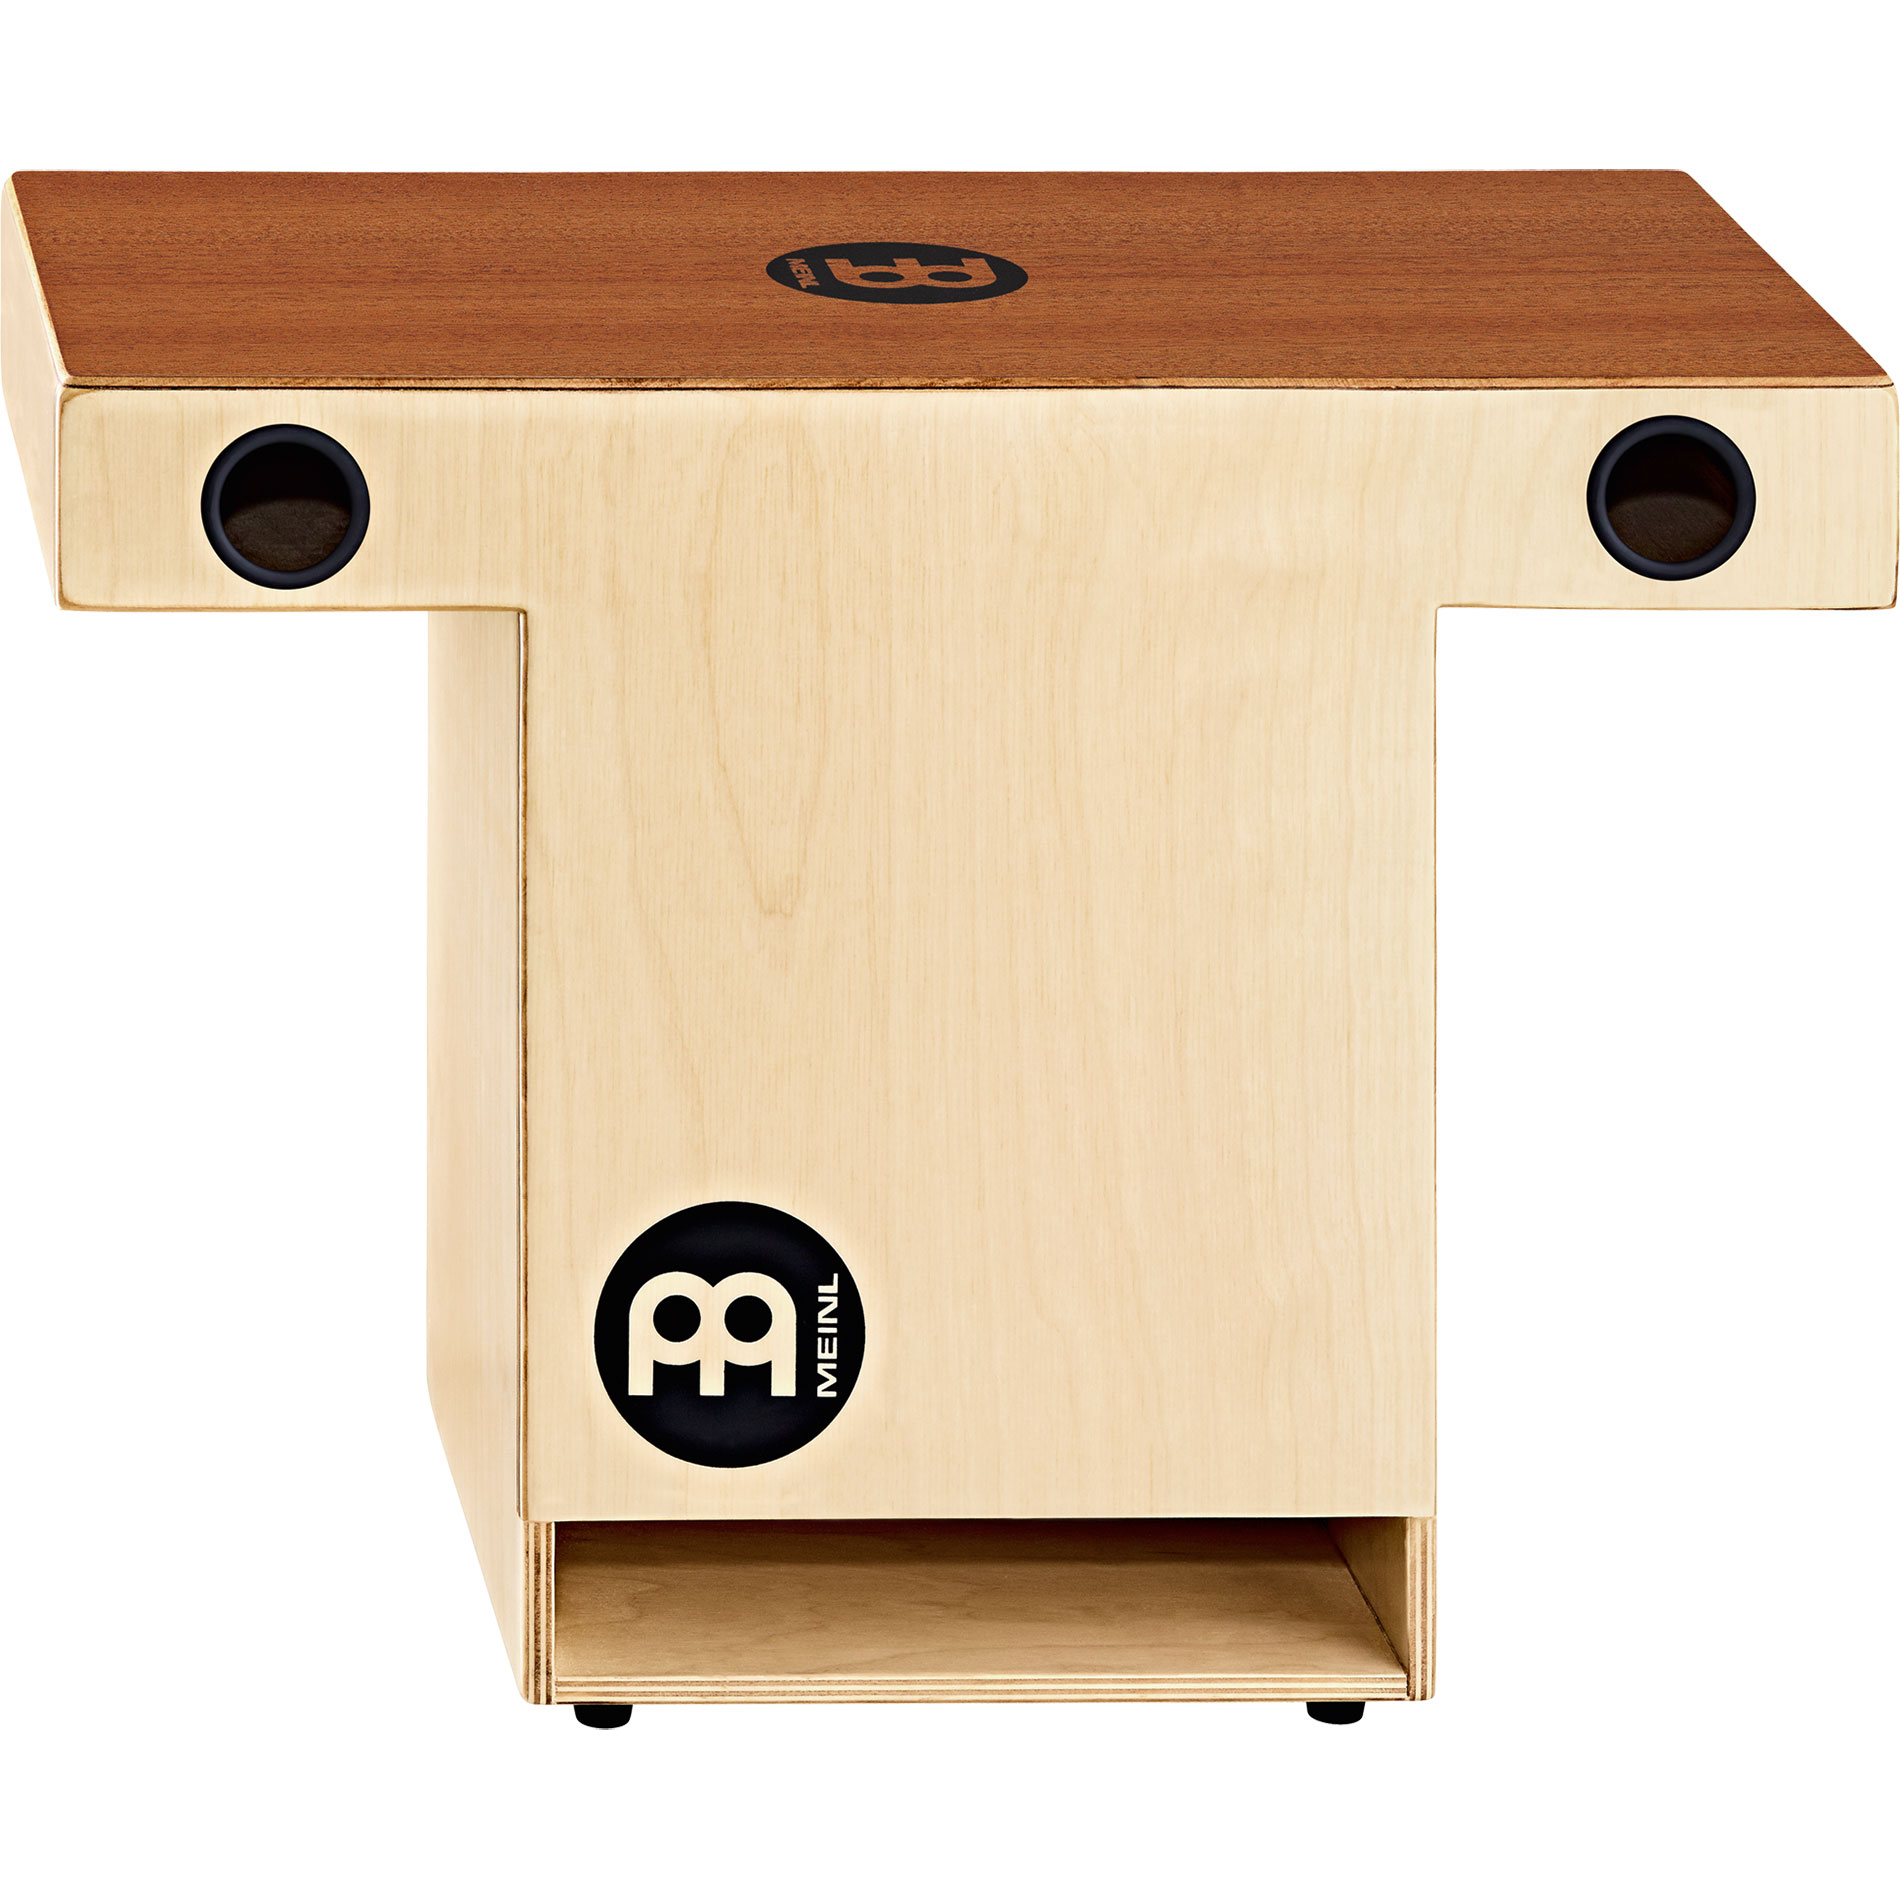 Meinl Turbo Slaptop Cajon in Mahogany